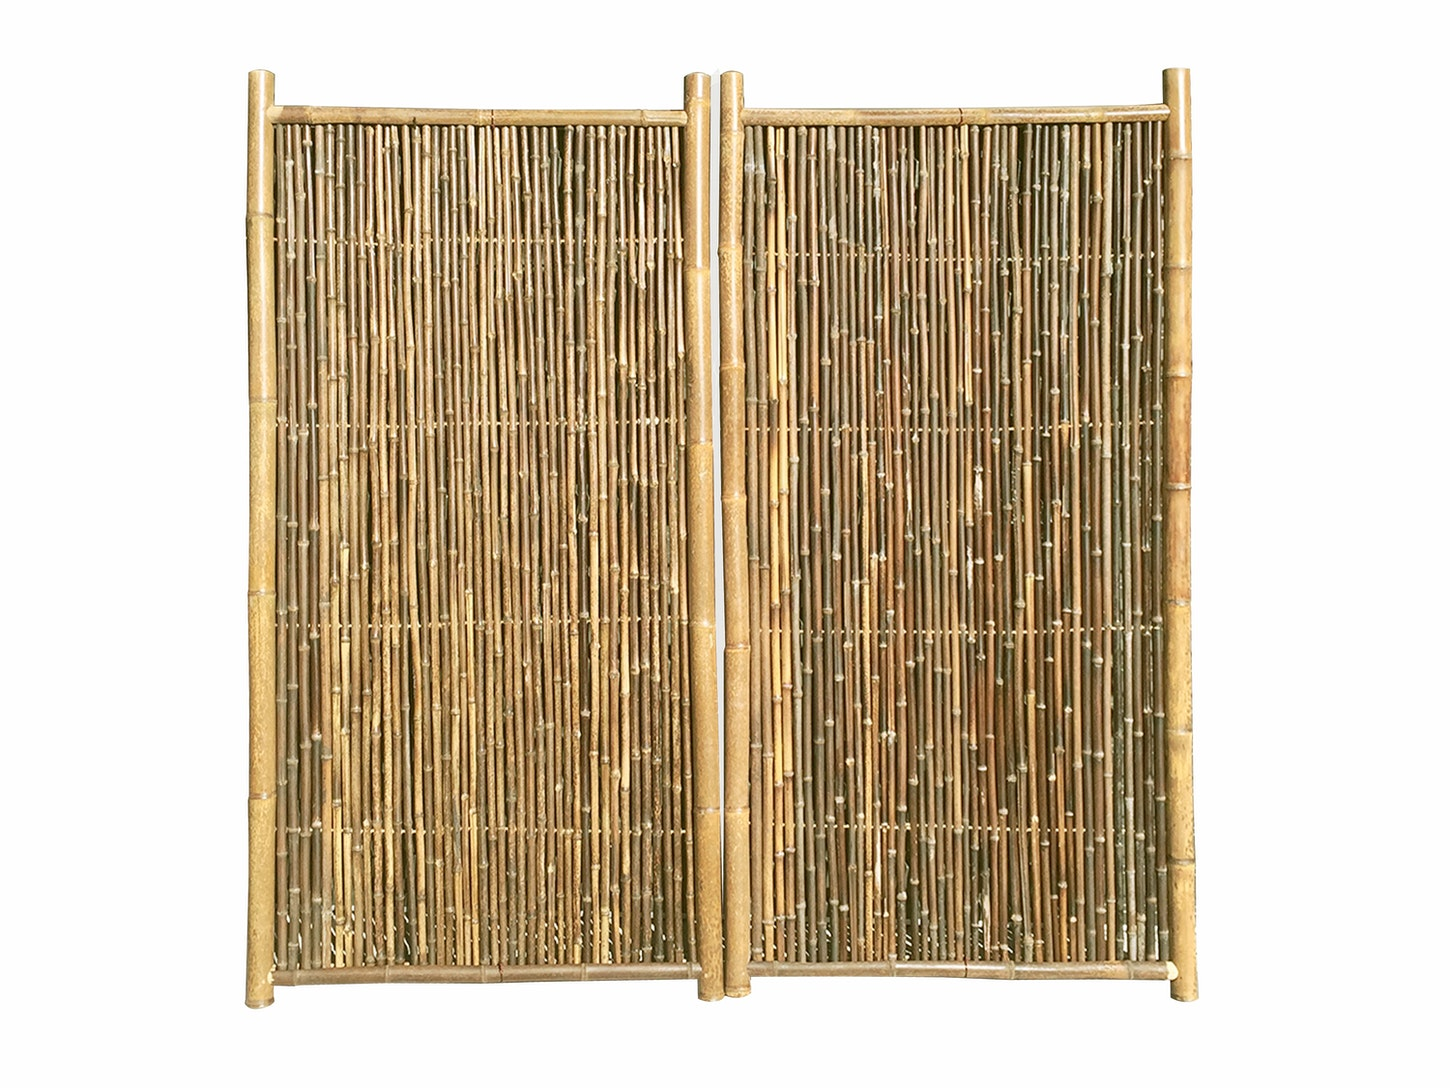 Bamboo Garden Screen 1 8m X 0 9m Natural Pair Privacy Screens Outdoor Decor Home Living Trade Tested